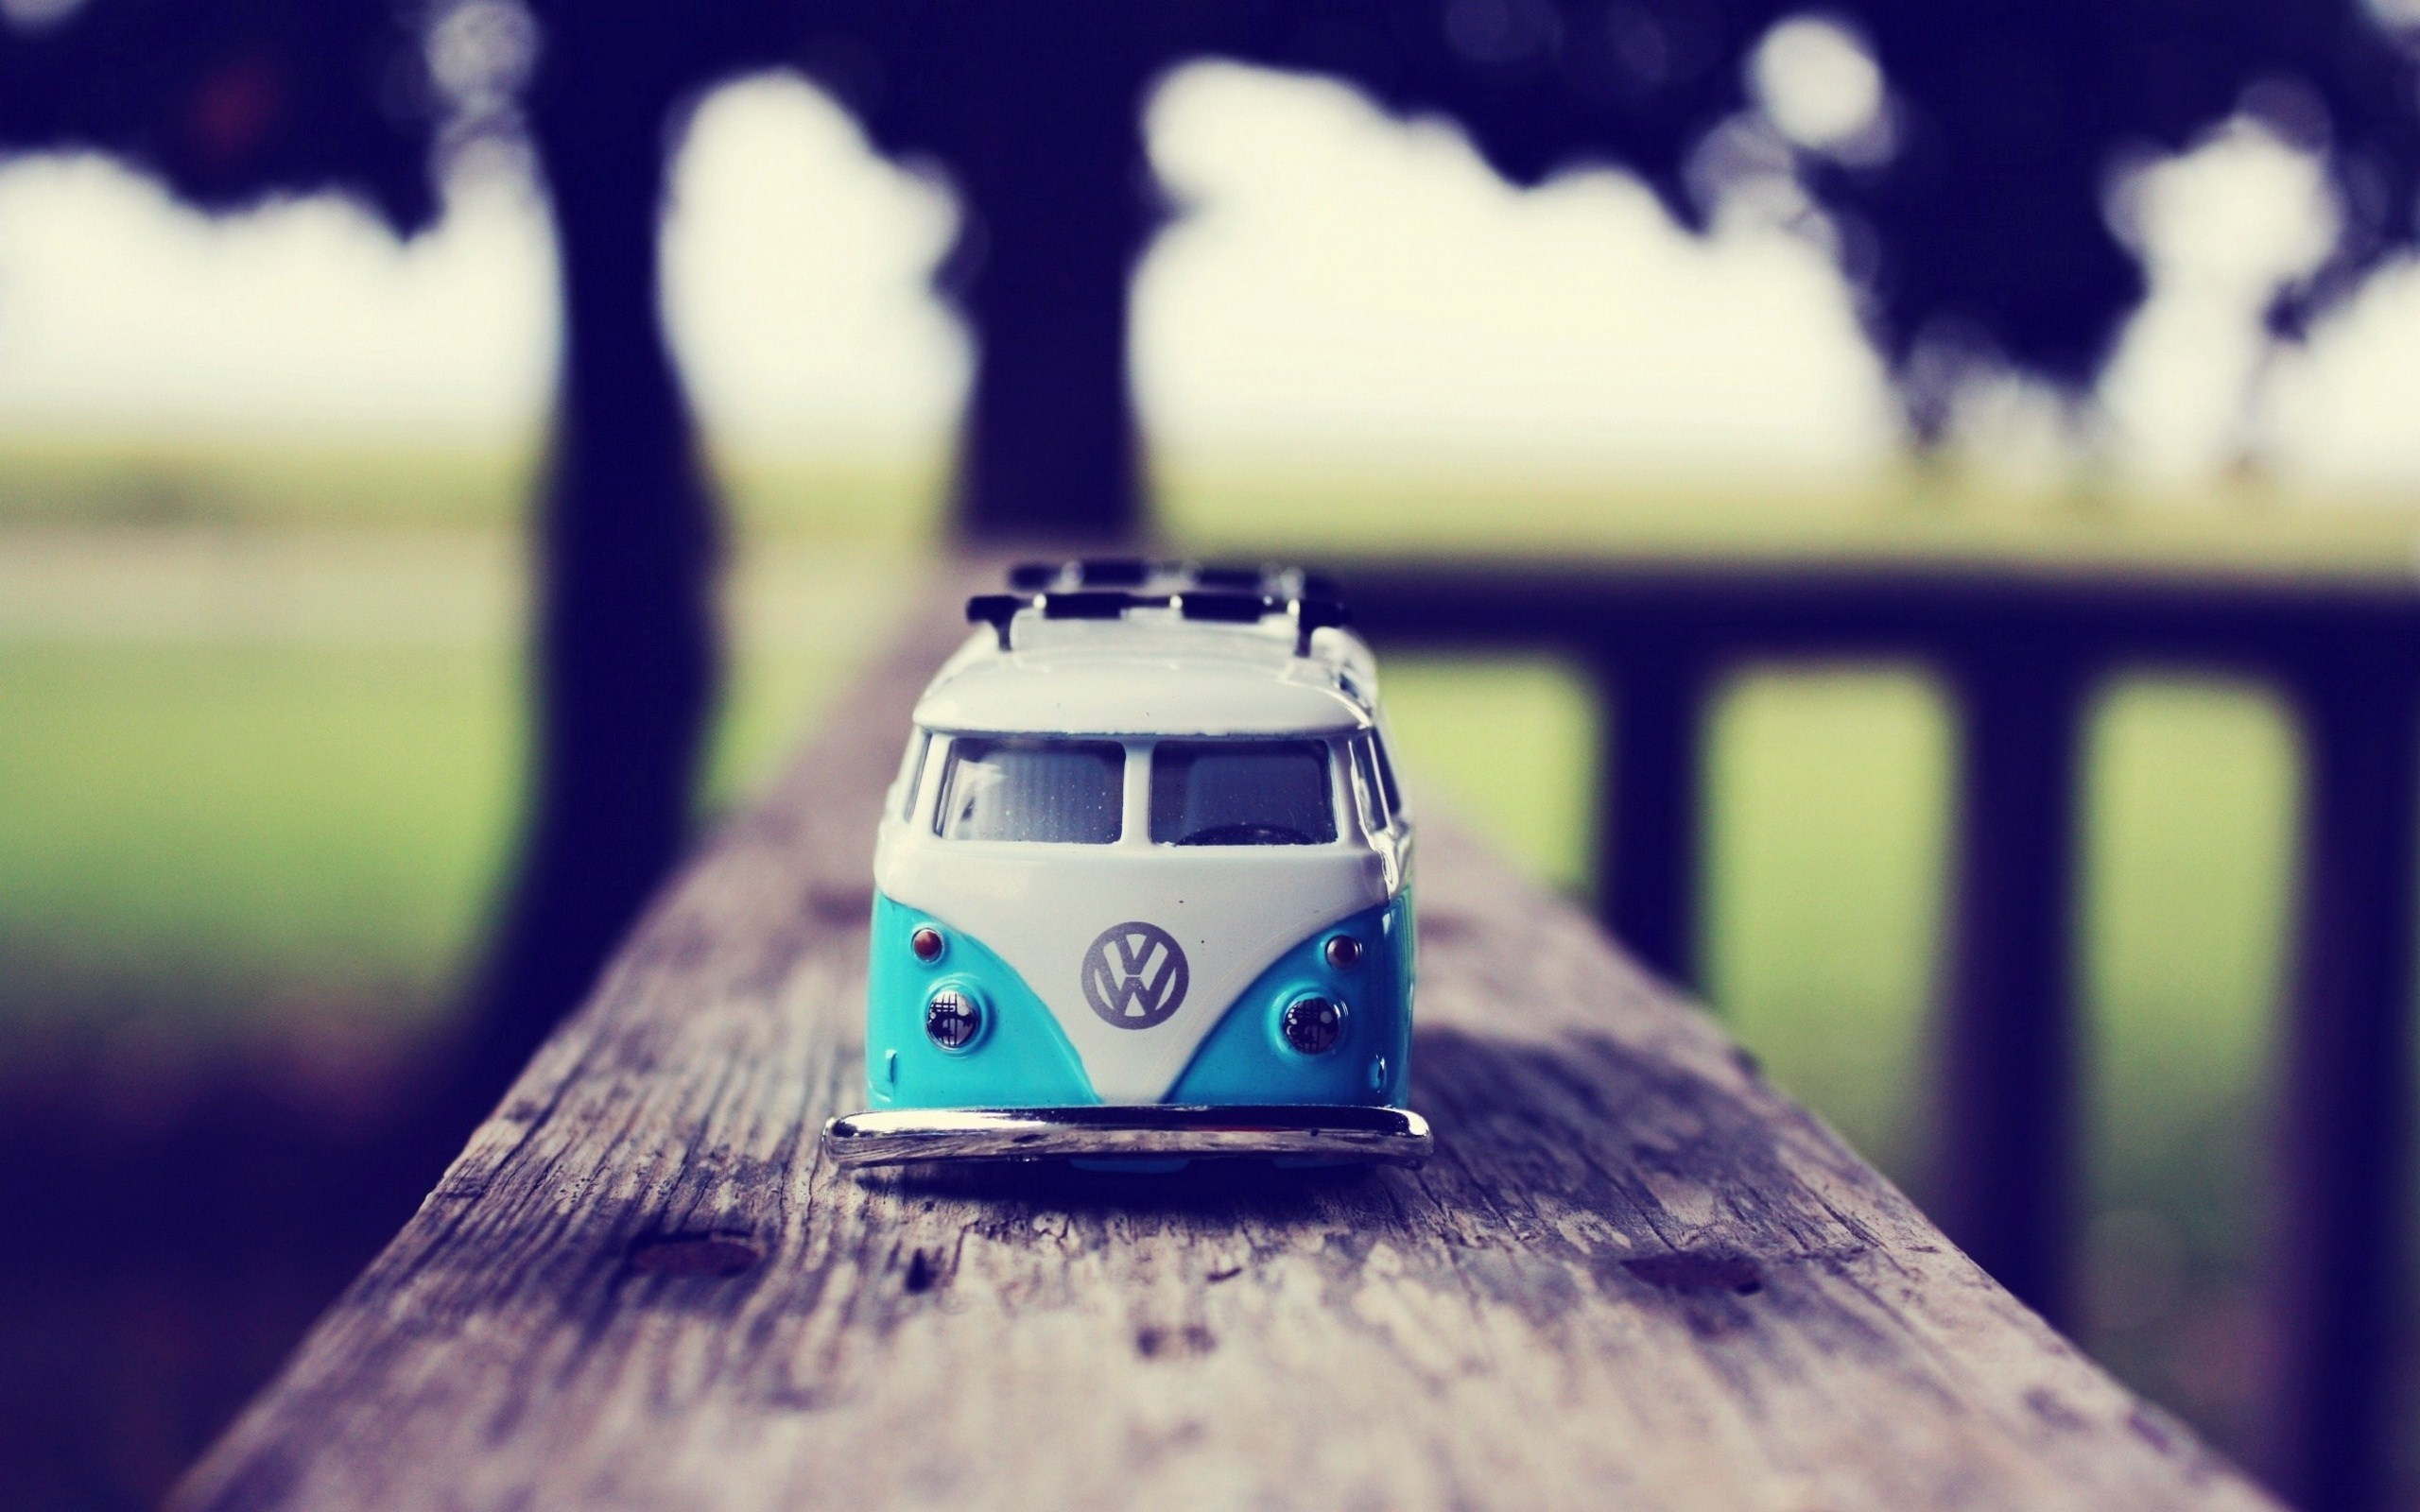 Volkswagen Toy